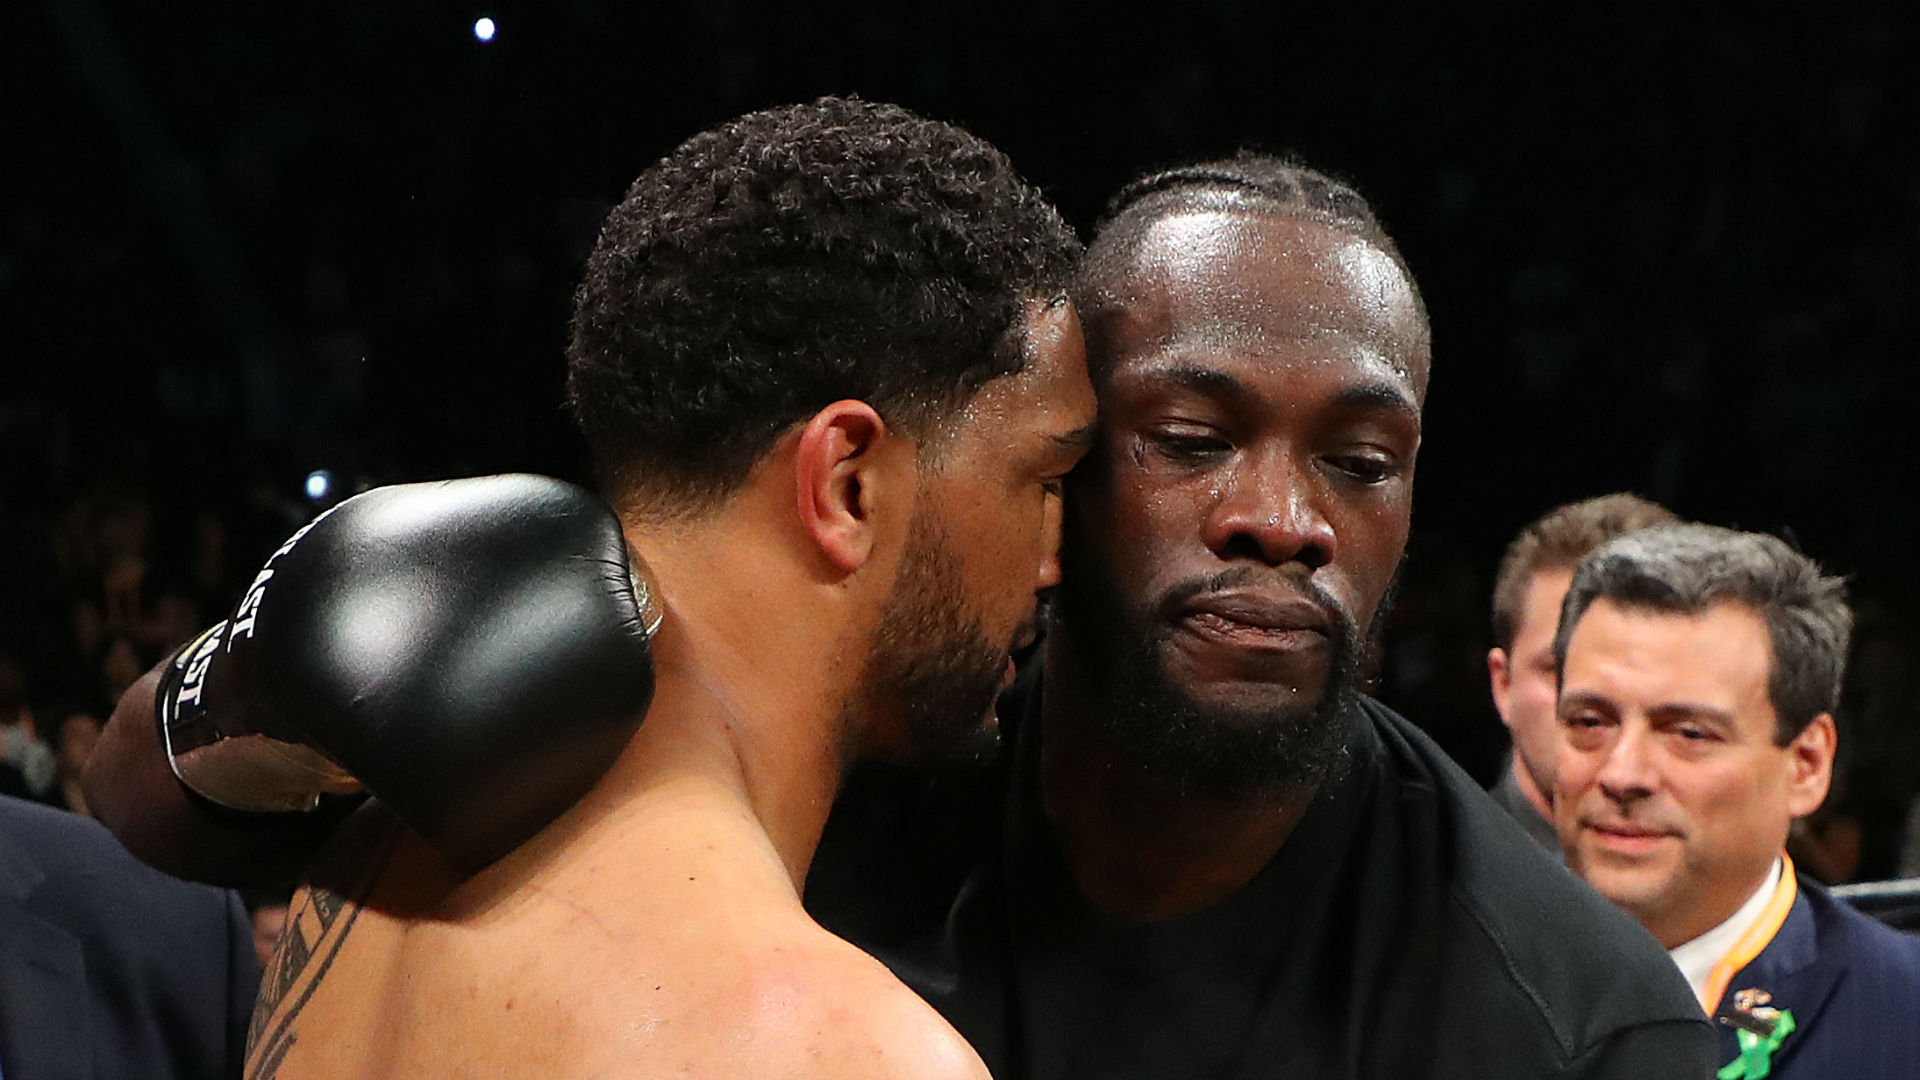 Dominic Breazeale feels referee stopped Deontay Wilder fight too early